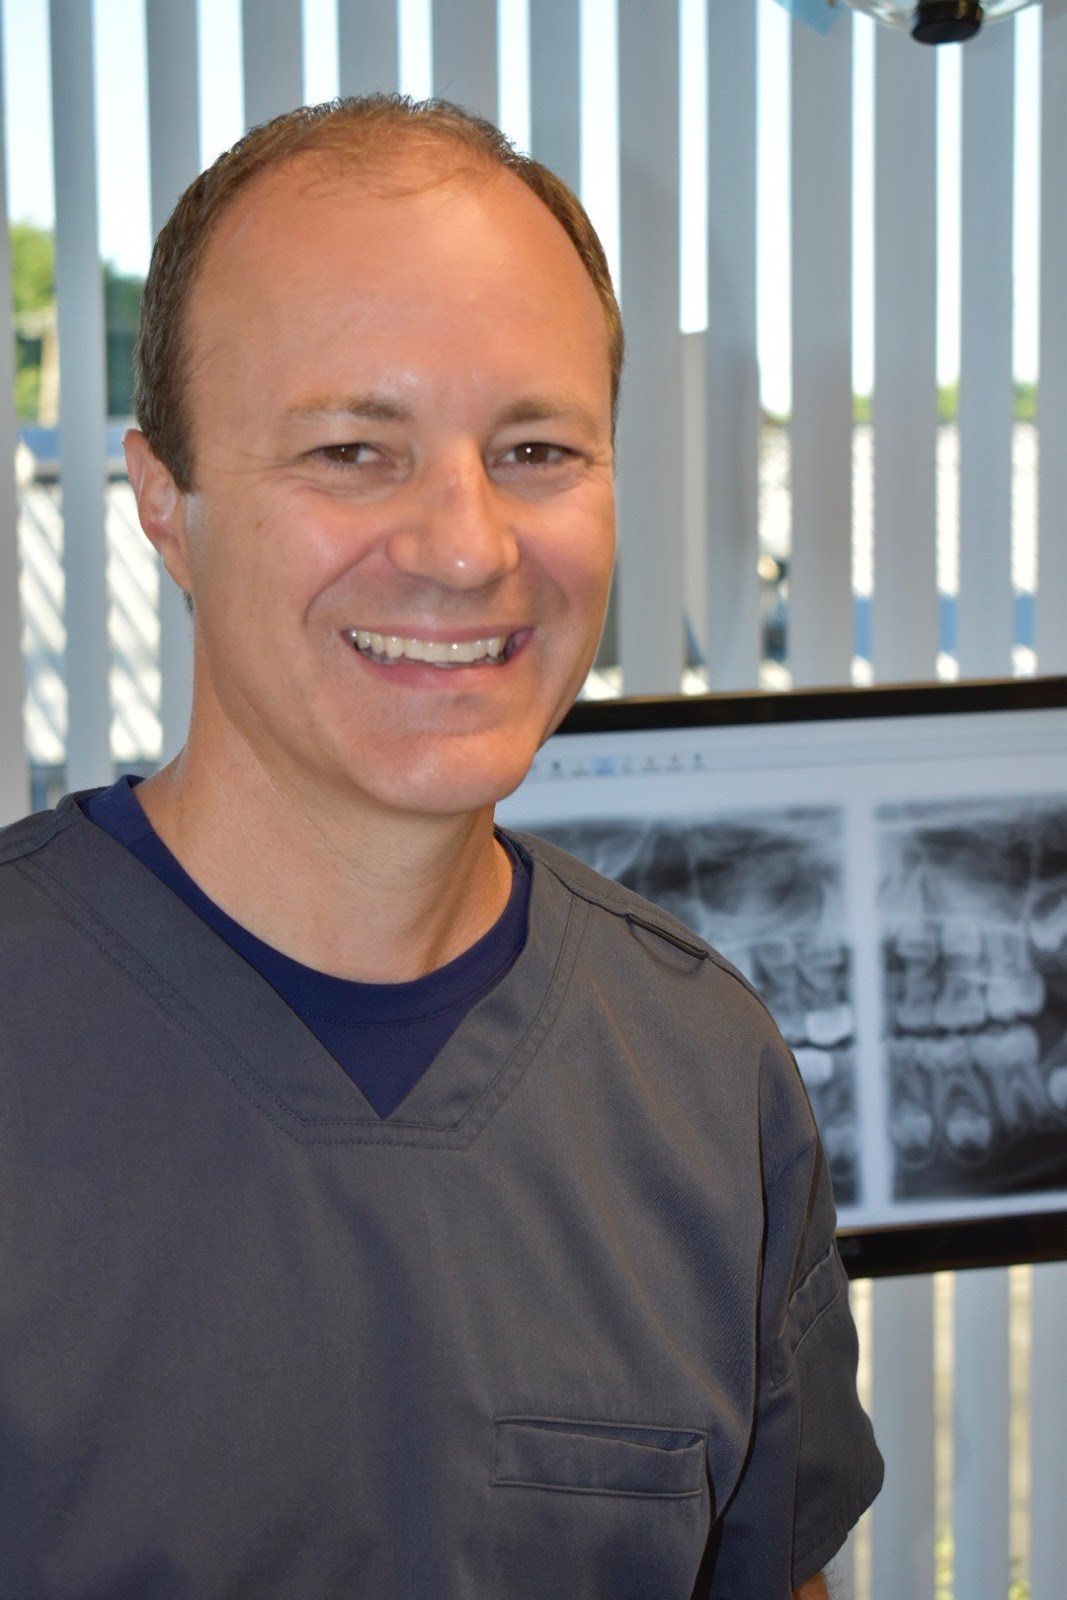 Top Rated Dentist in Modesto